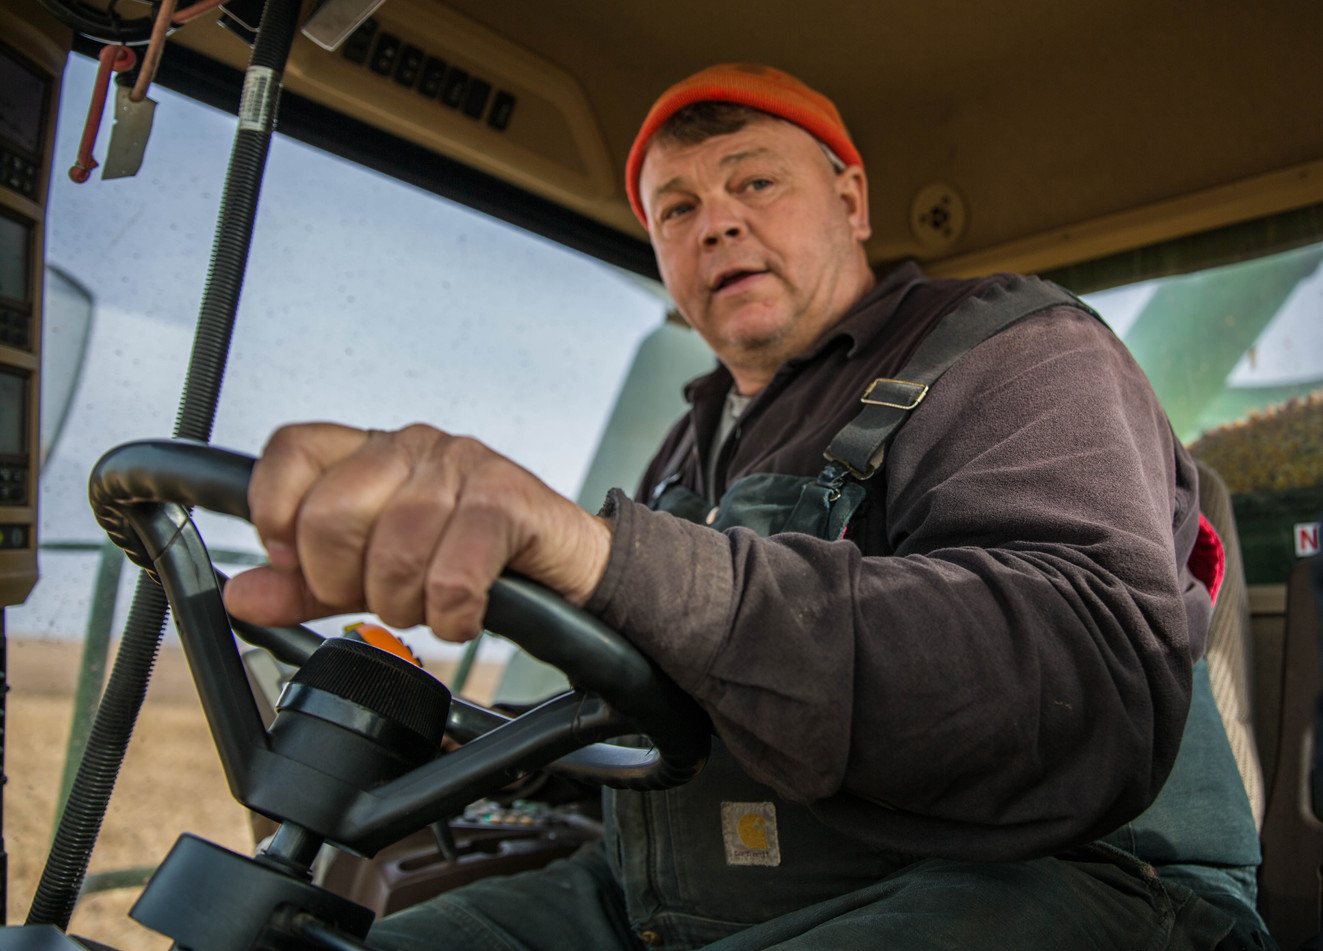 Jim Thyen drives the 12-row combine through one of the Thyen farm fields during the dry corn harvest on Tuesday, Oct. 31. Jim and his brother, Dan, who own their family's farm in Waverly, have farmed their whole lives. ©2017 Grace Ramey